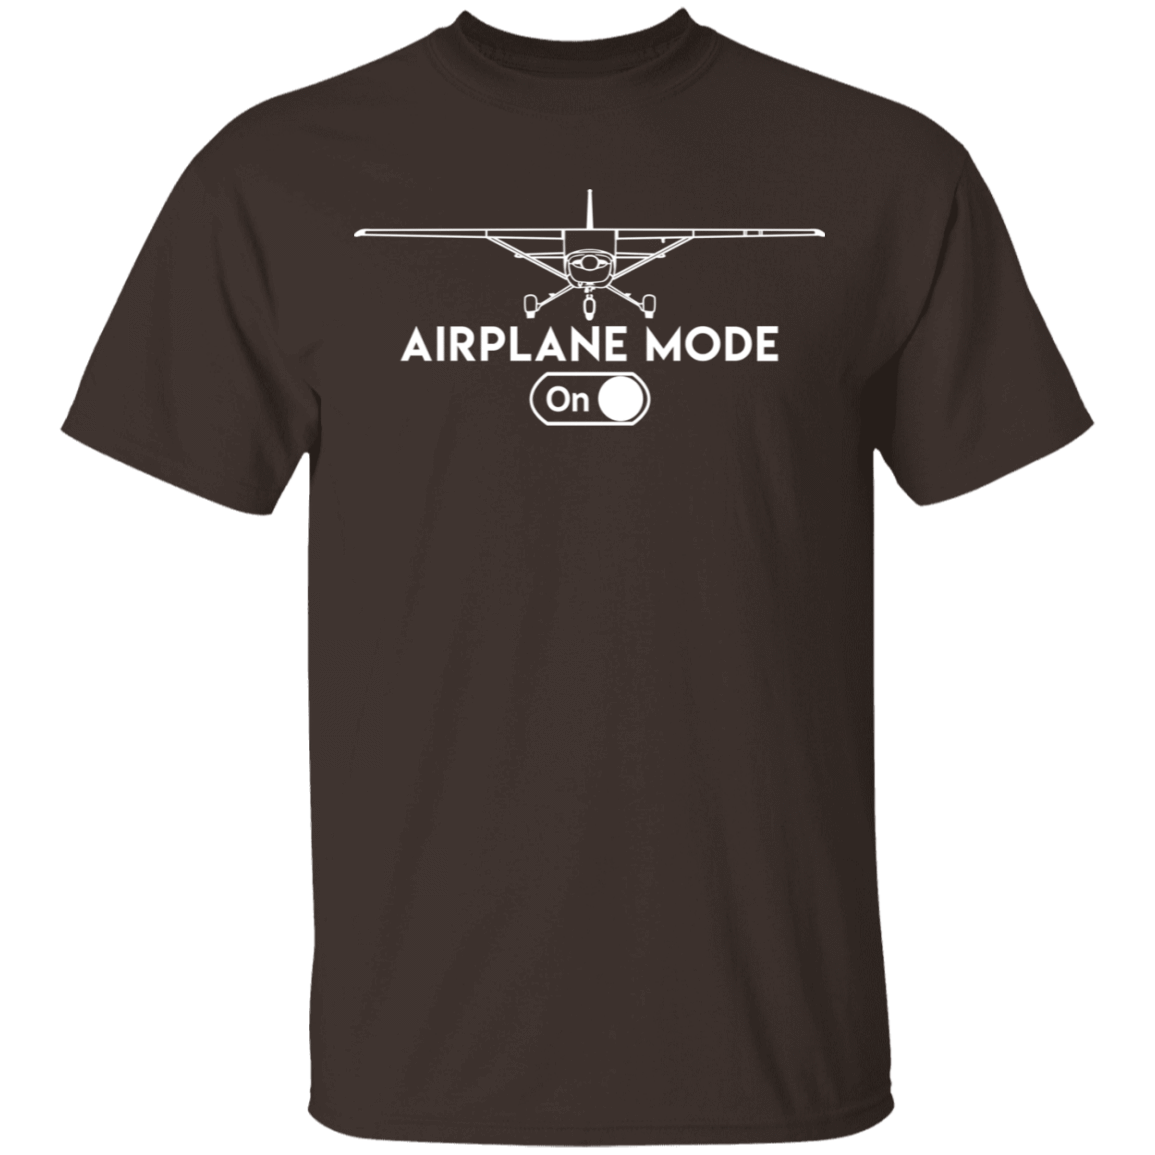 Airplane Mode On T-Shirts, Hoodies 1049-9956-82972774-48152 - Tee Ript